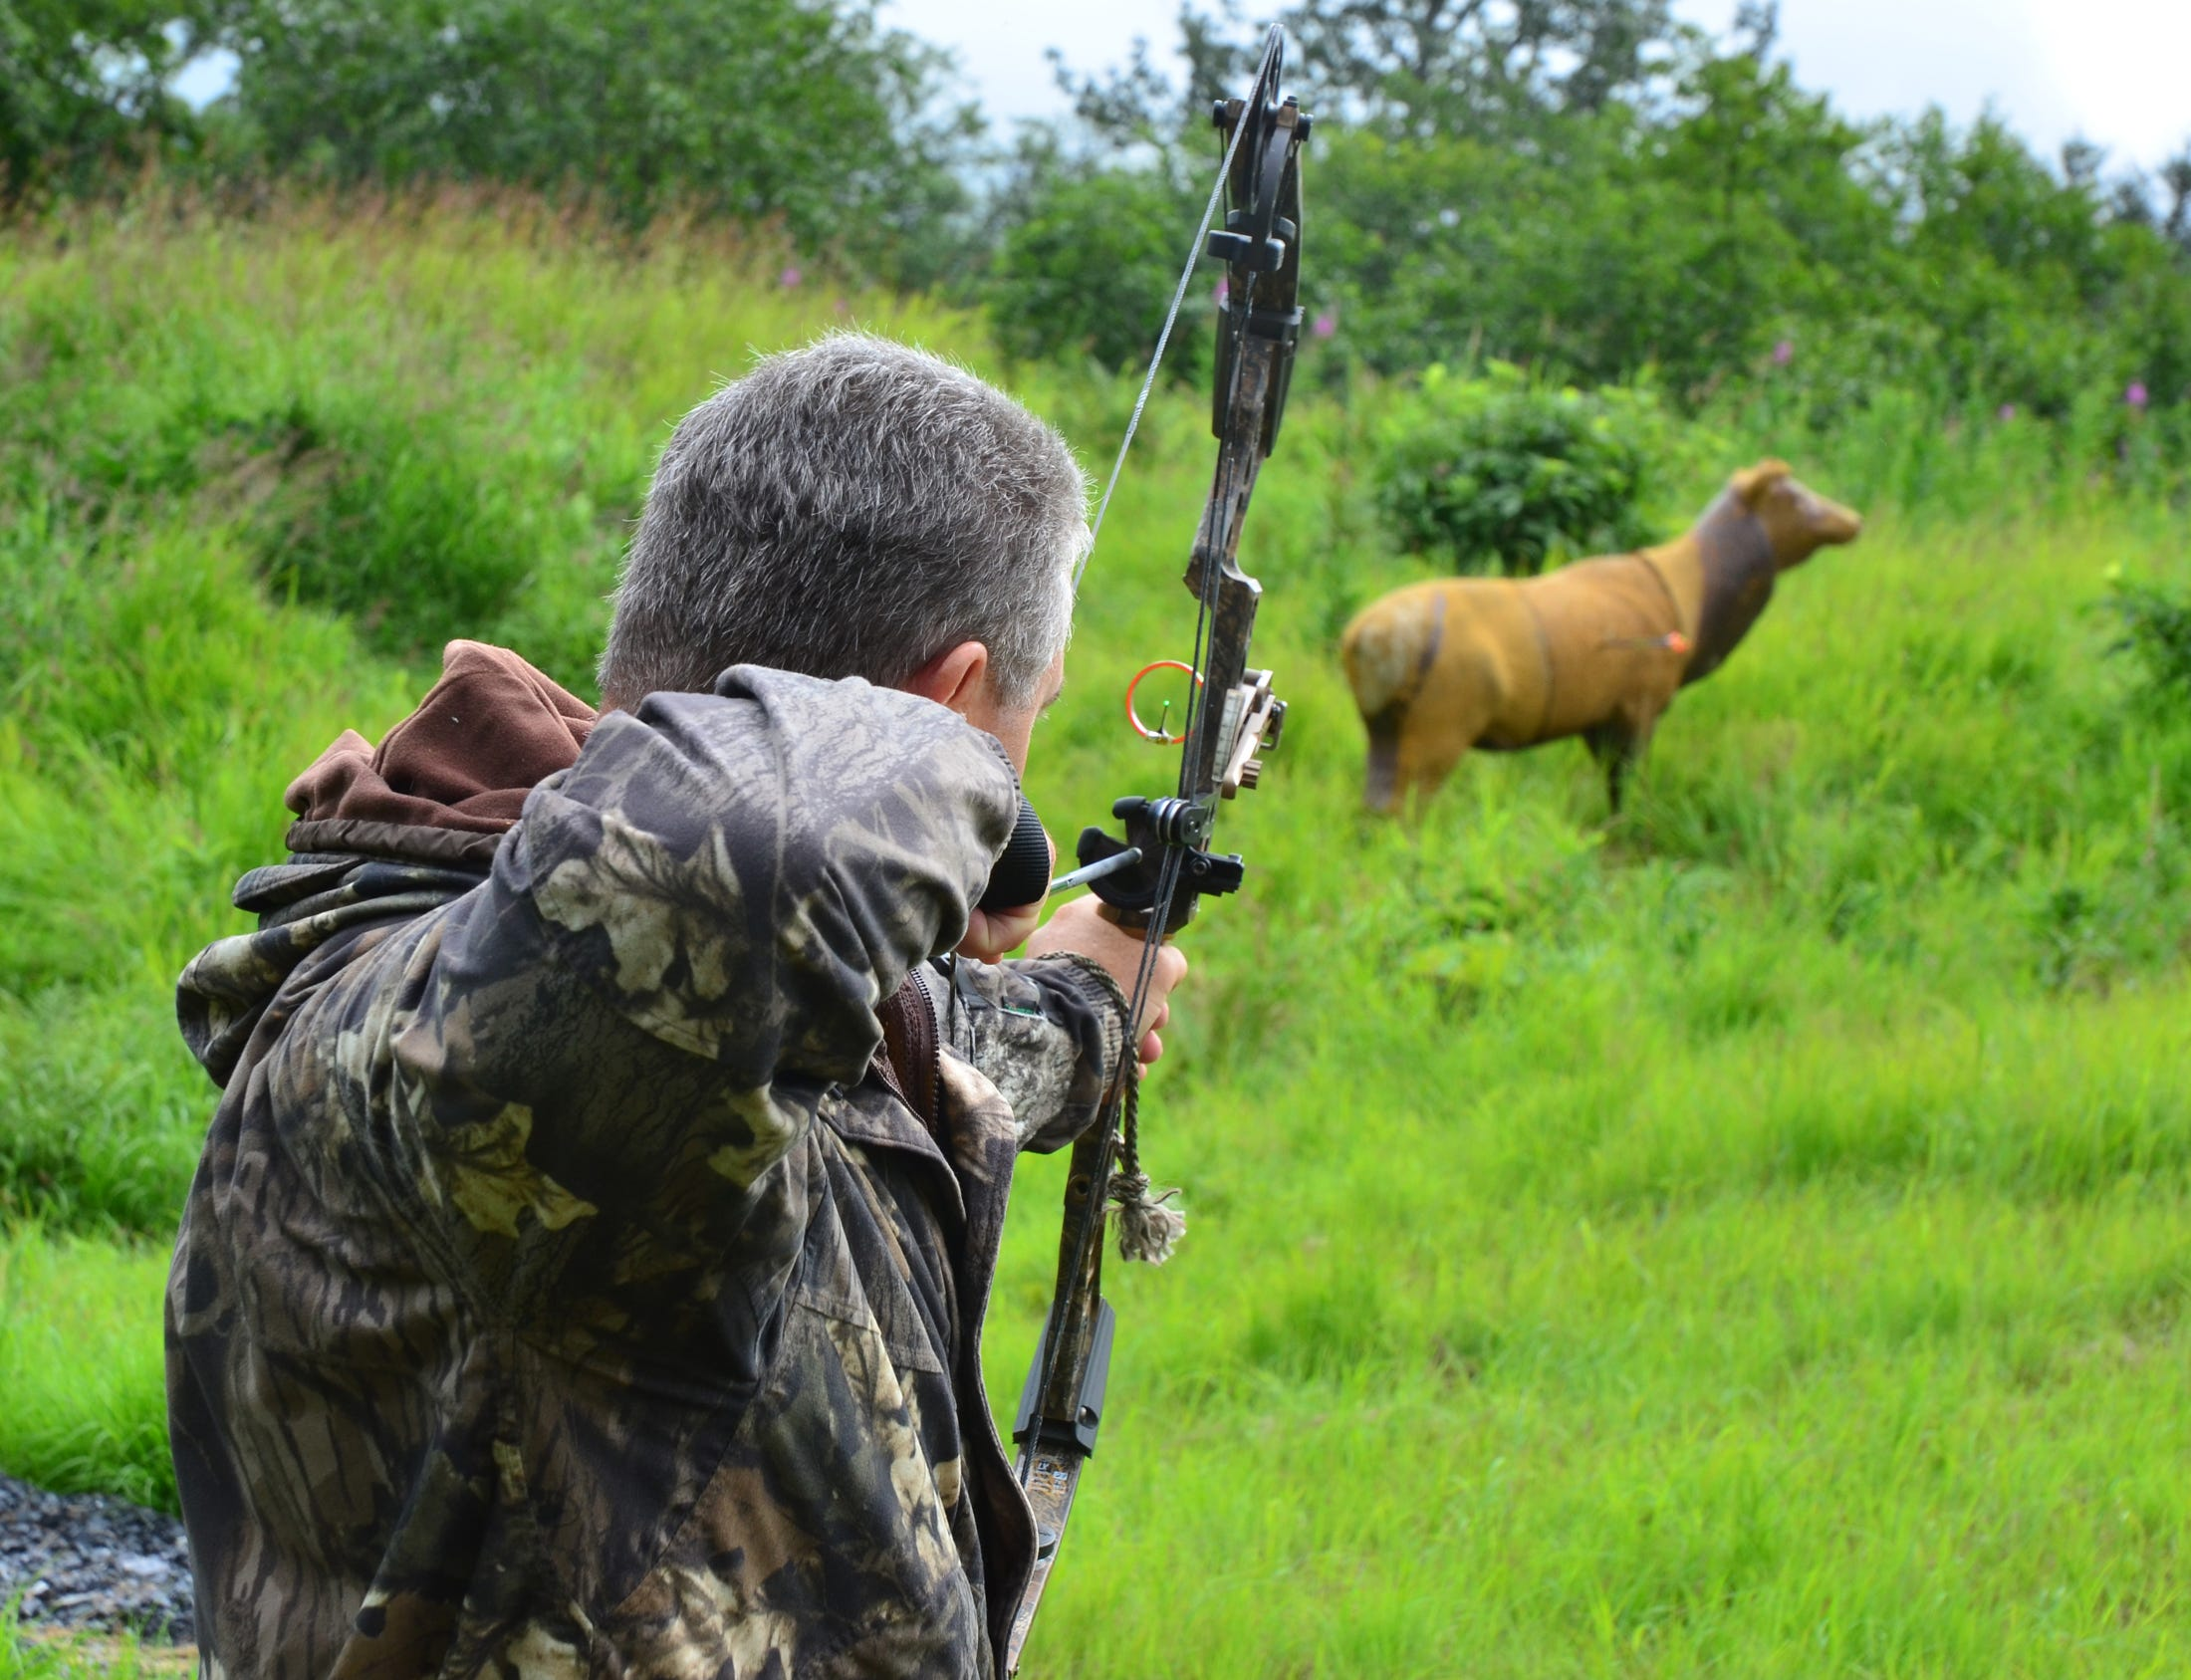 Archery-only hunting will be allowed for a limited time on property owned by the Pittsburgh International Airport.